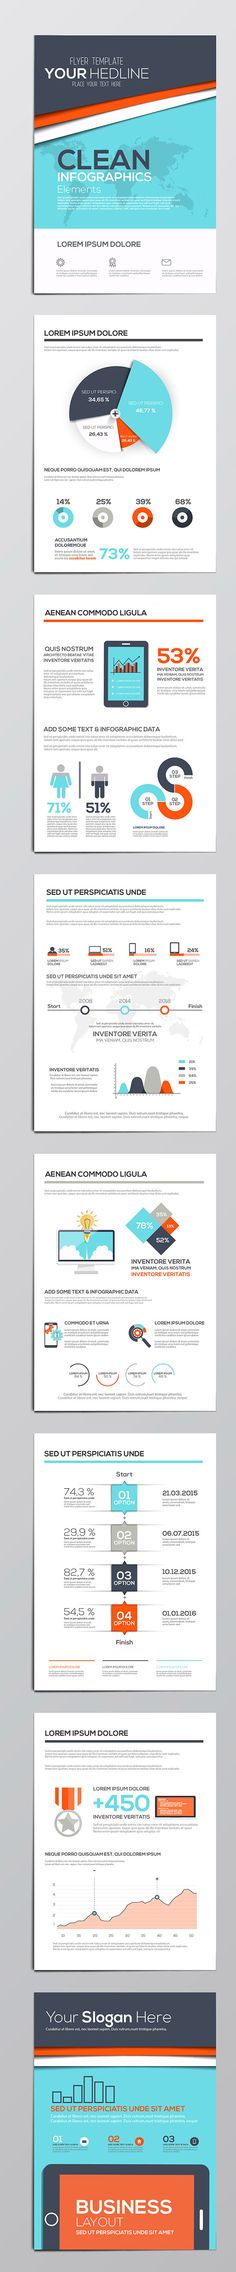 https://www.behance.net/gallery/23893487/Business-infographics-elements-for-corporate-brochures